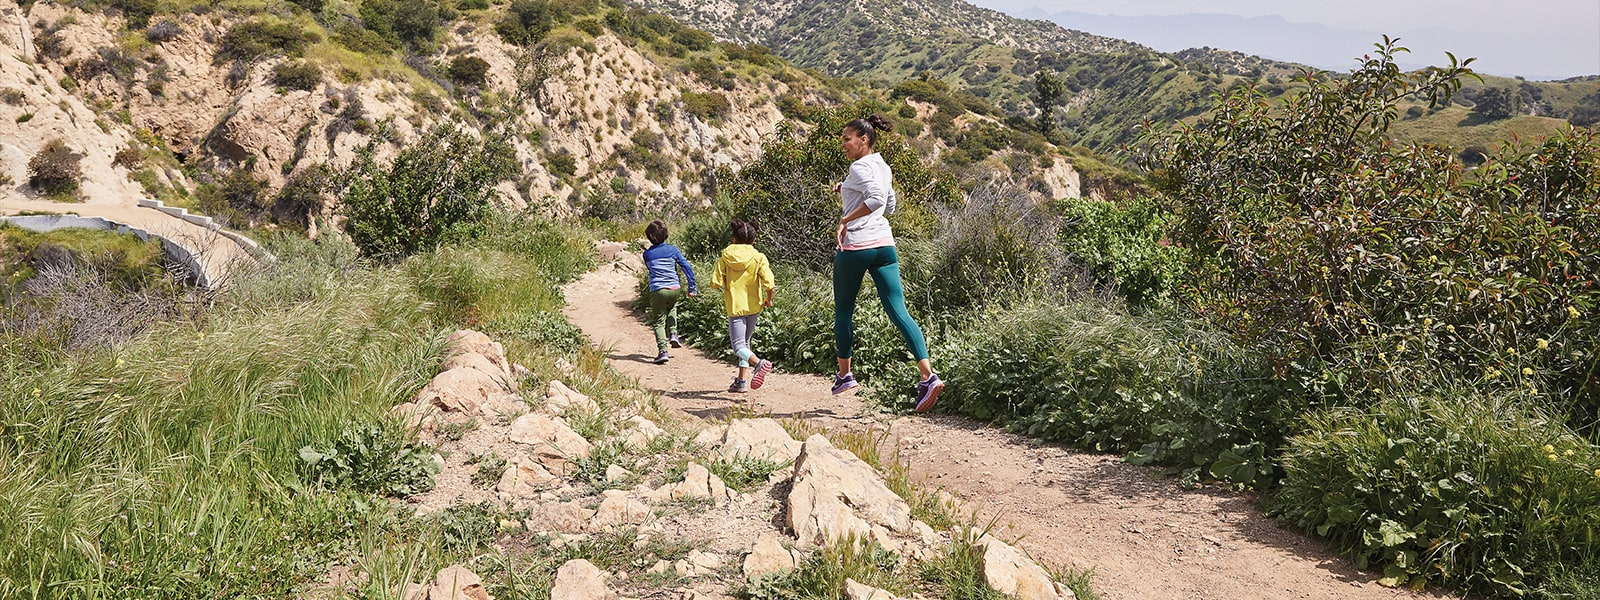 A mom and two kids going for a run on a trail